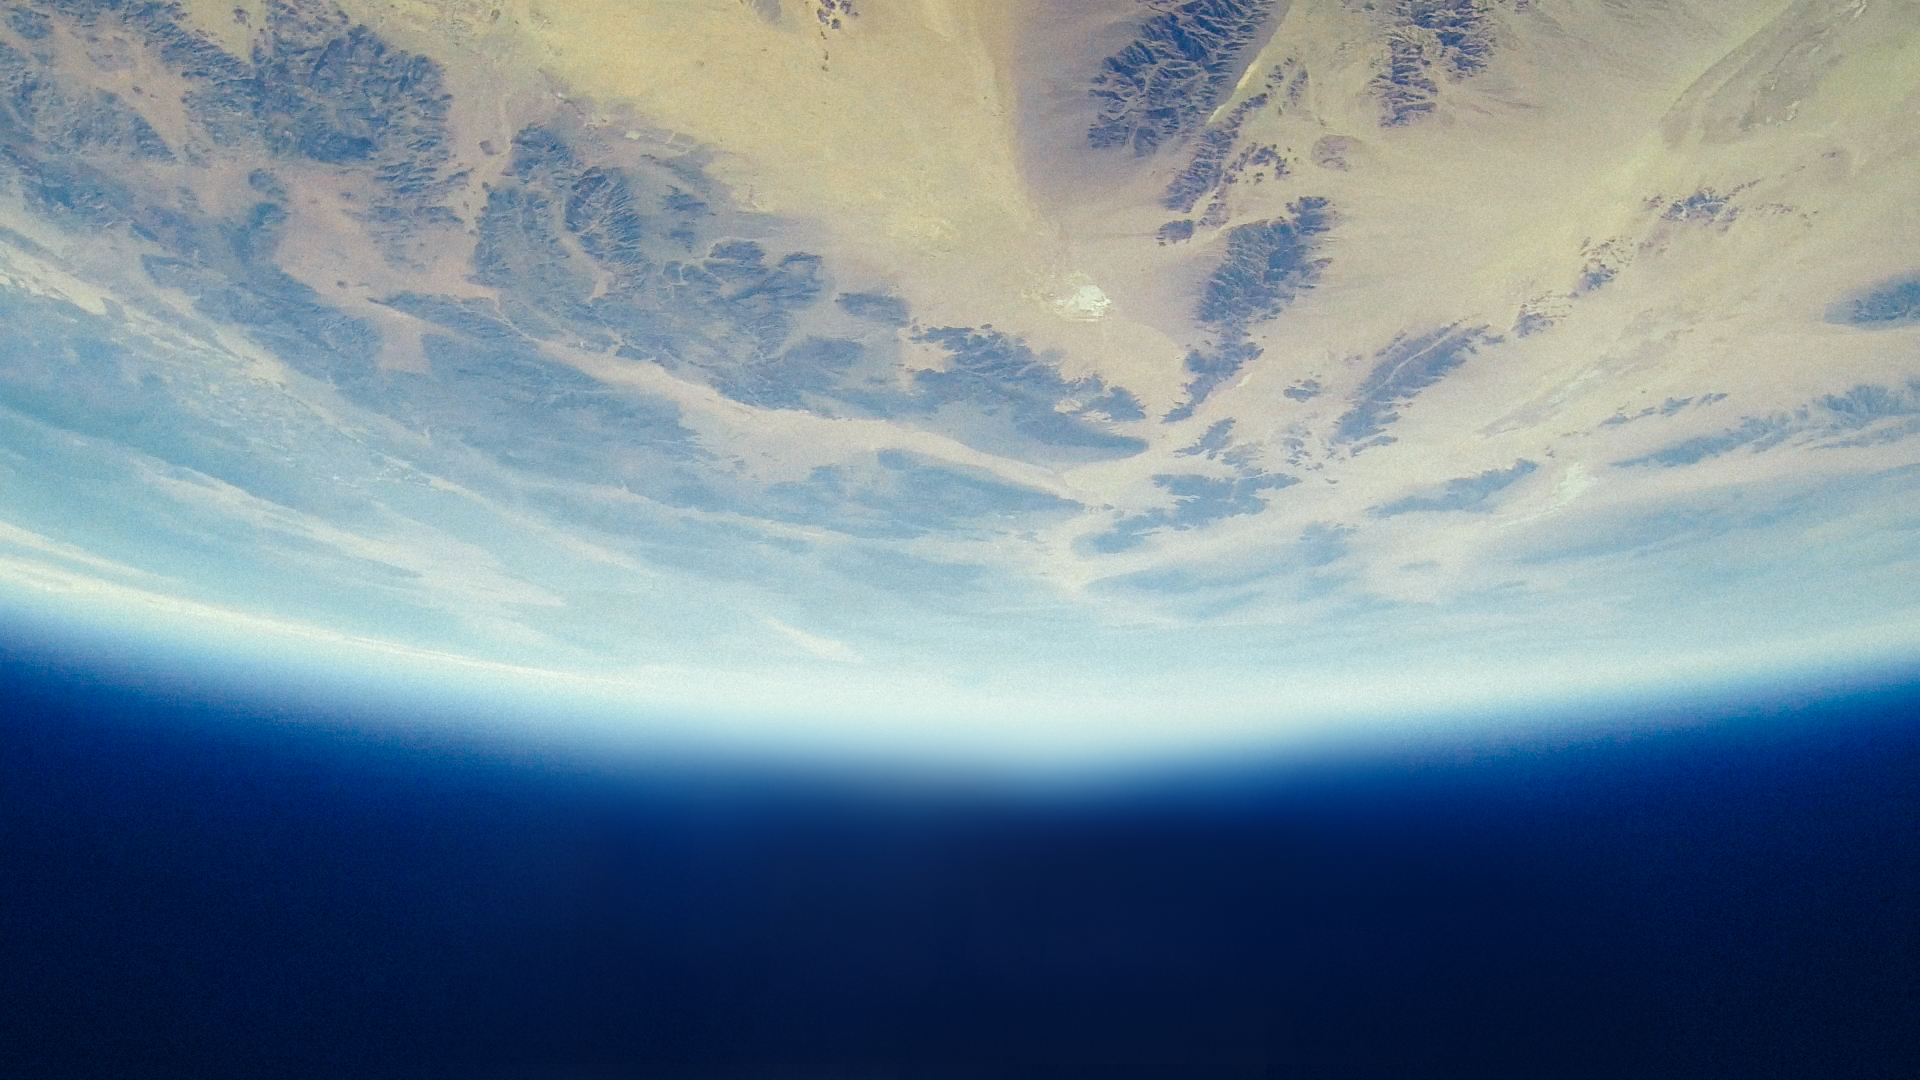 Image of earth's atmosphere from outer space.